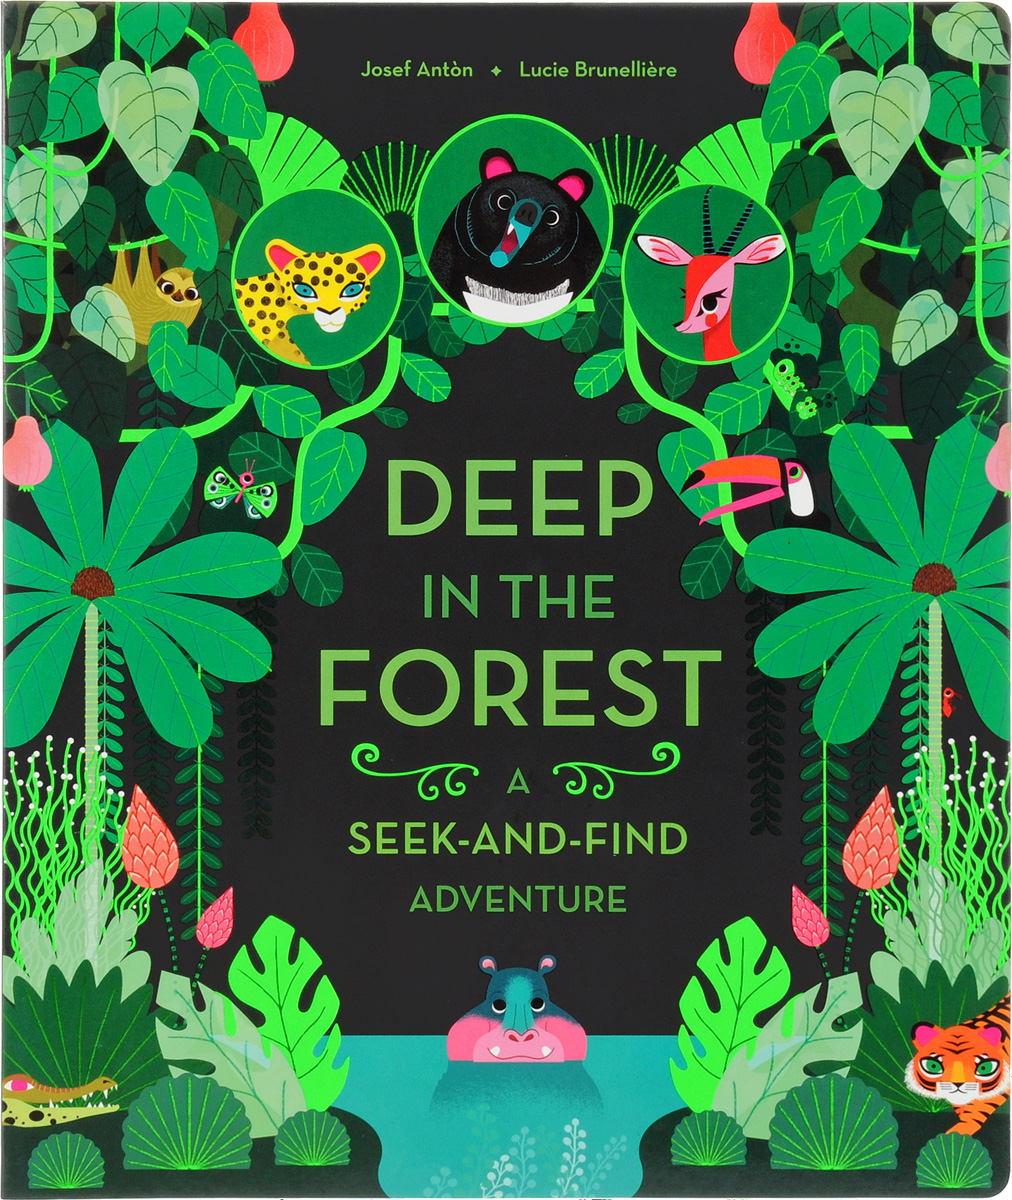 Deep in the Forest: A Seek-and-Find Adventure seek thermal